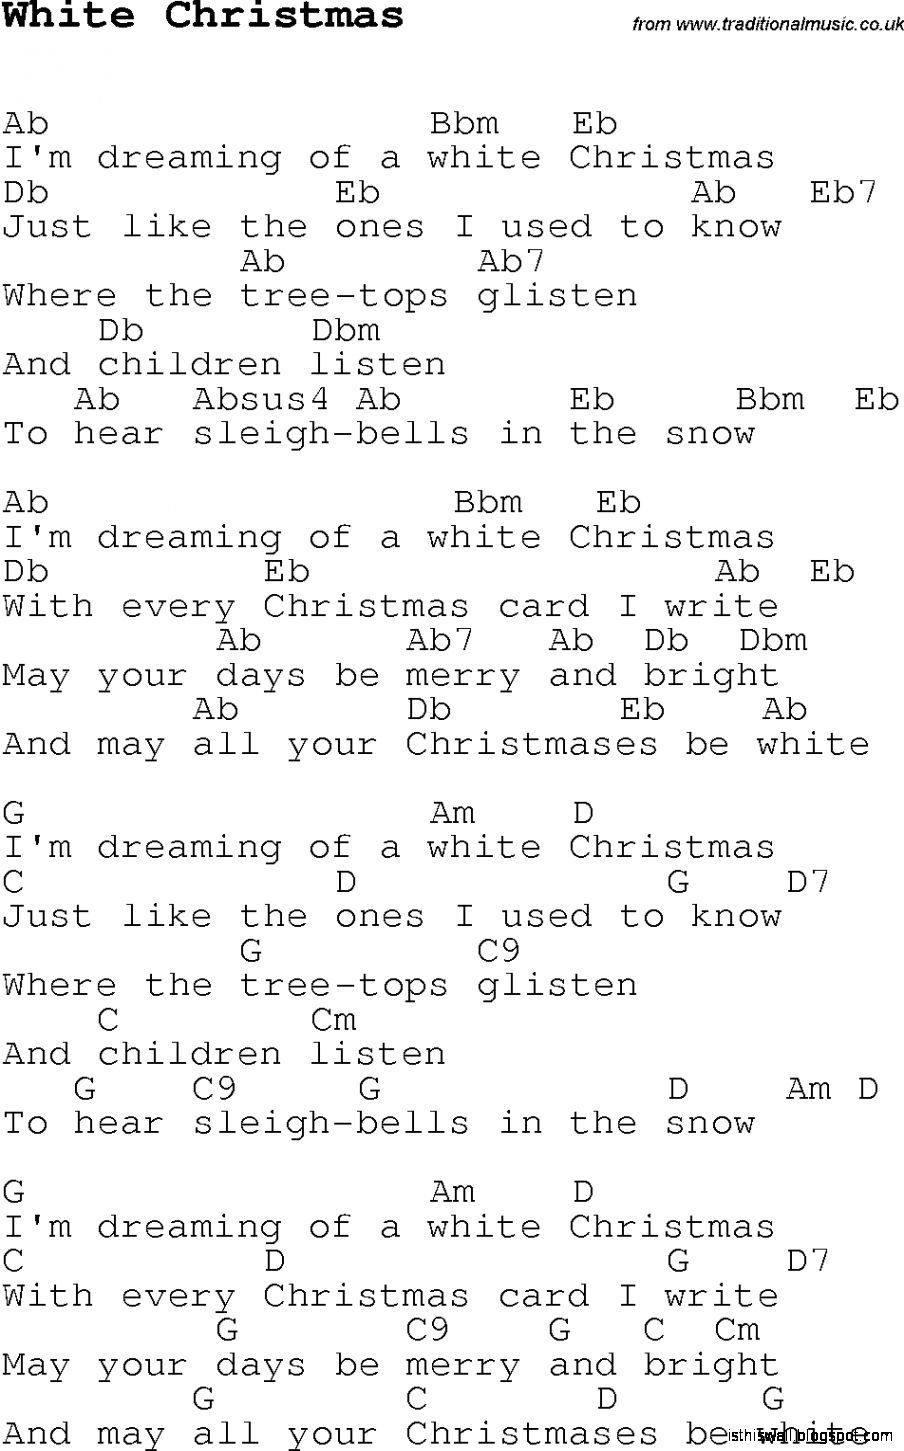 view original size - Who Wrote The Song White Christmas